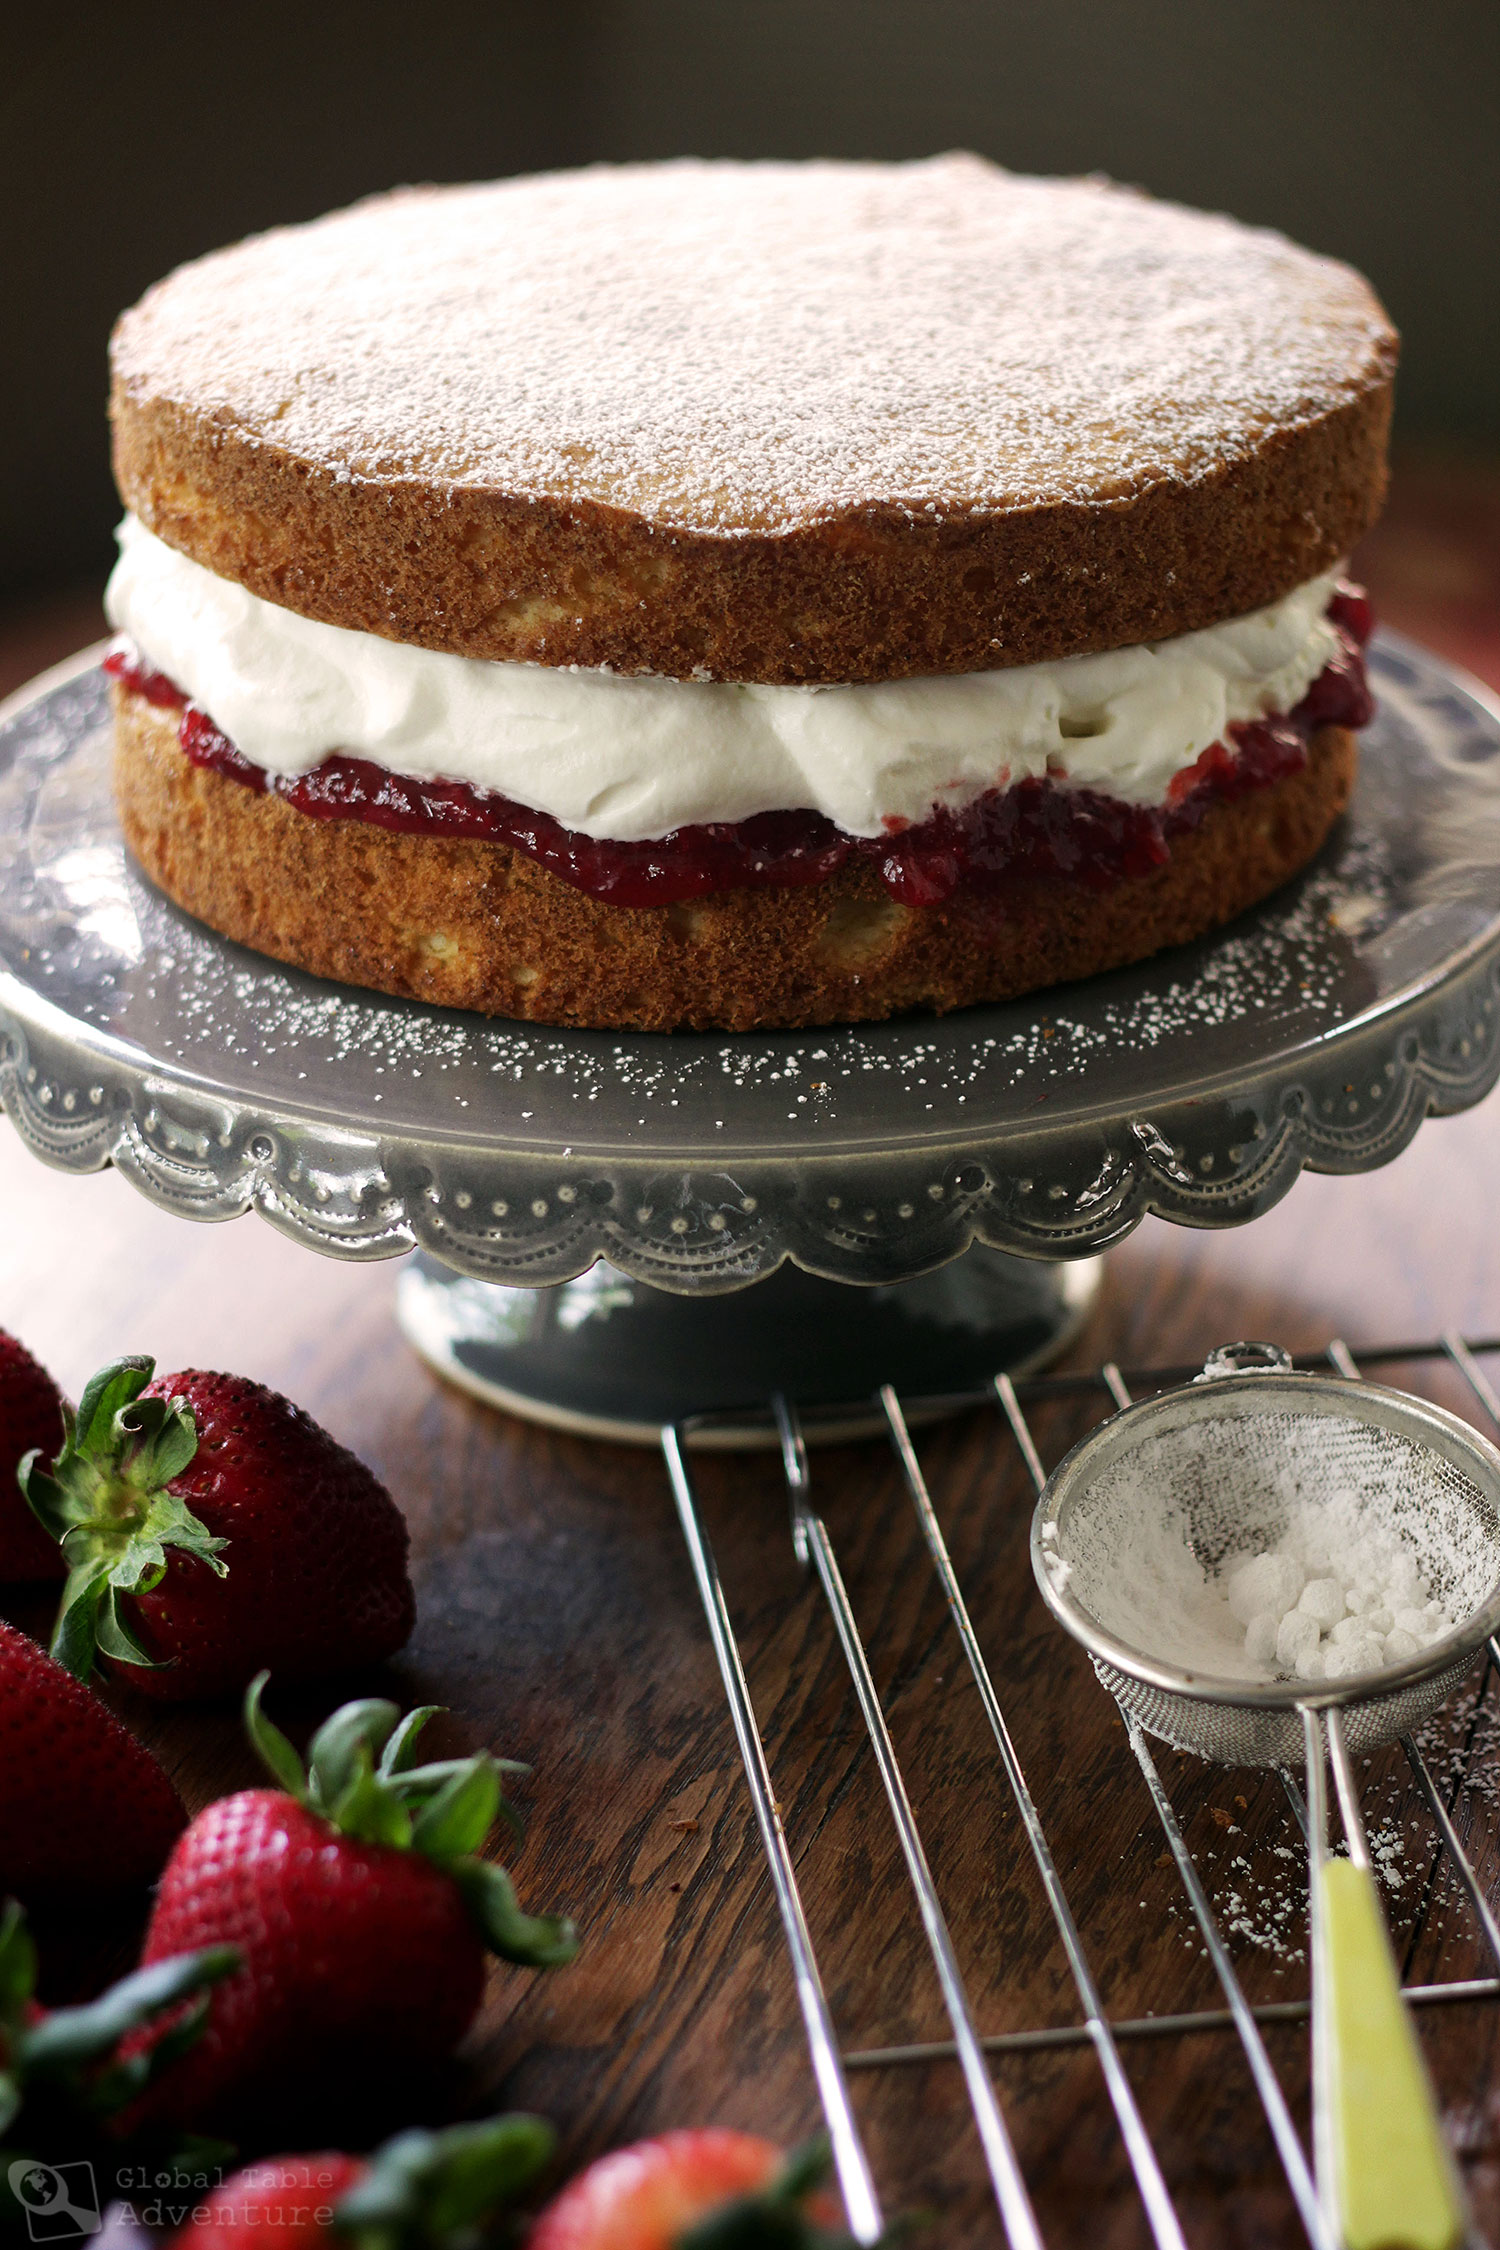 Instructions Of How To Make A Victoria Sponge Cake